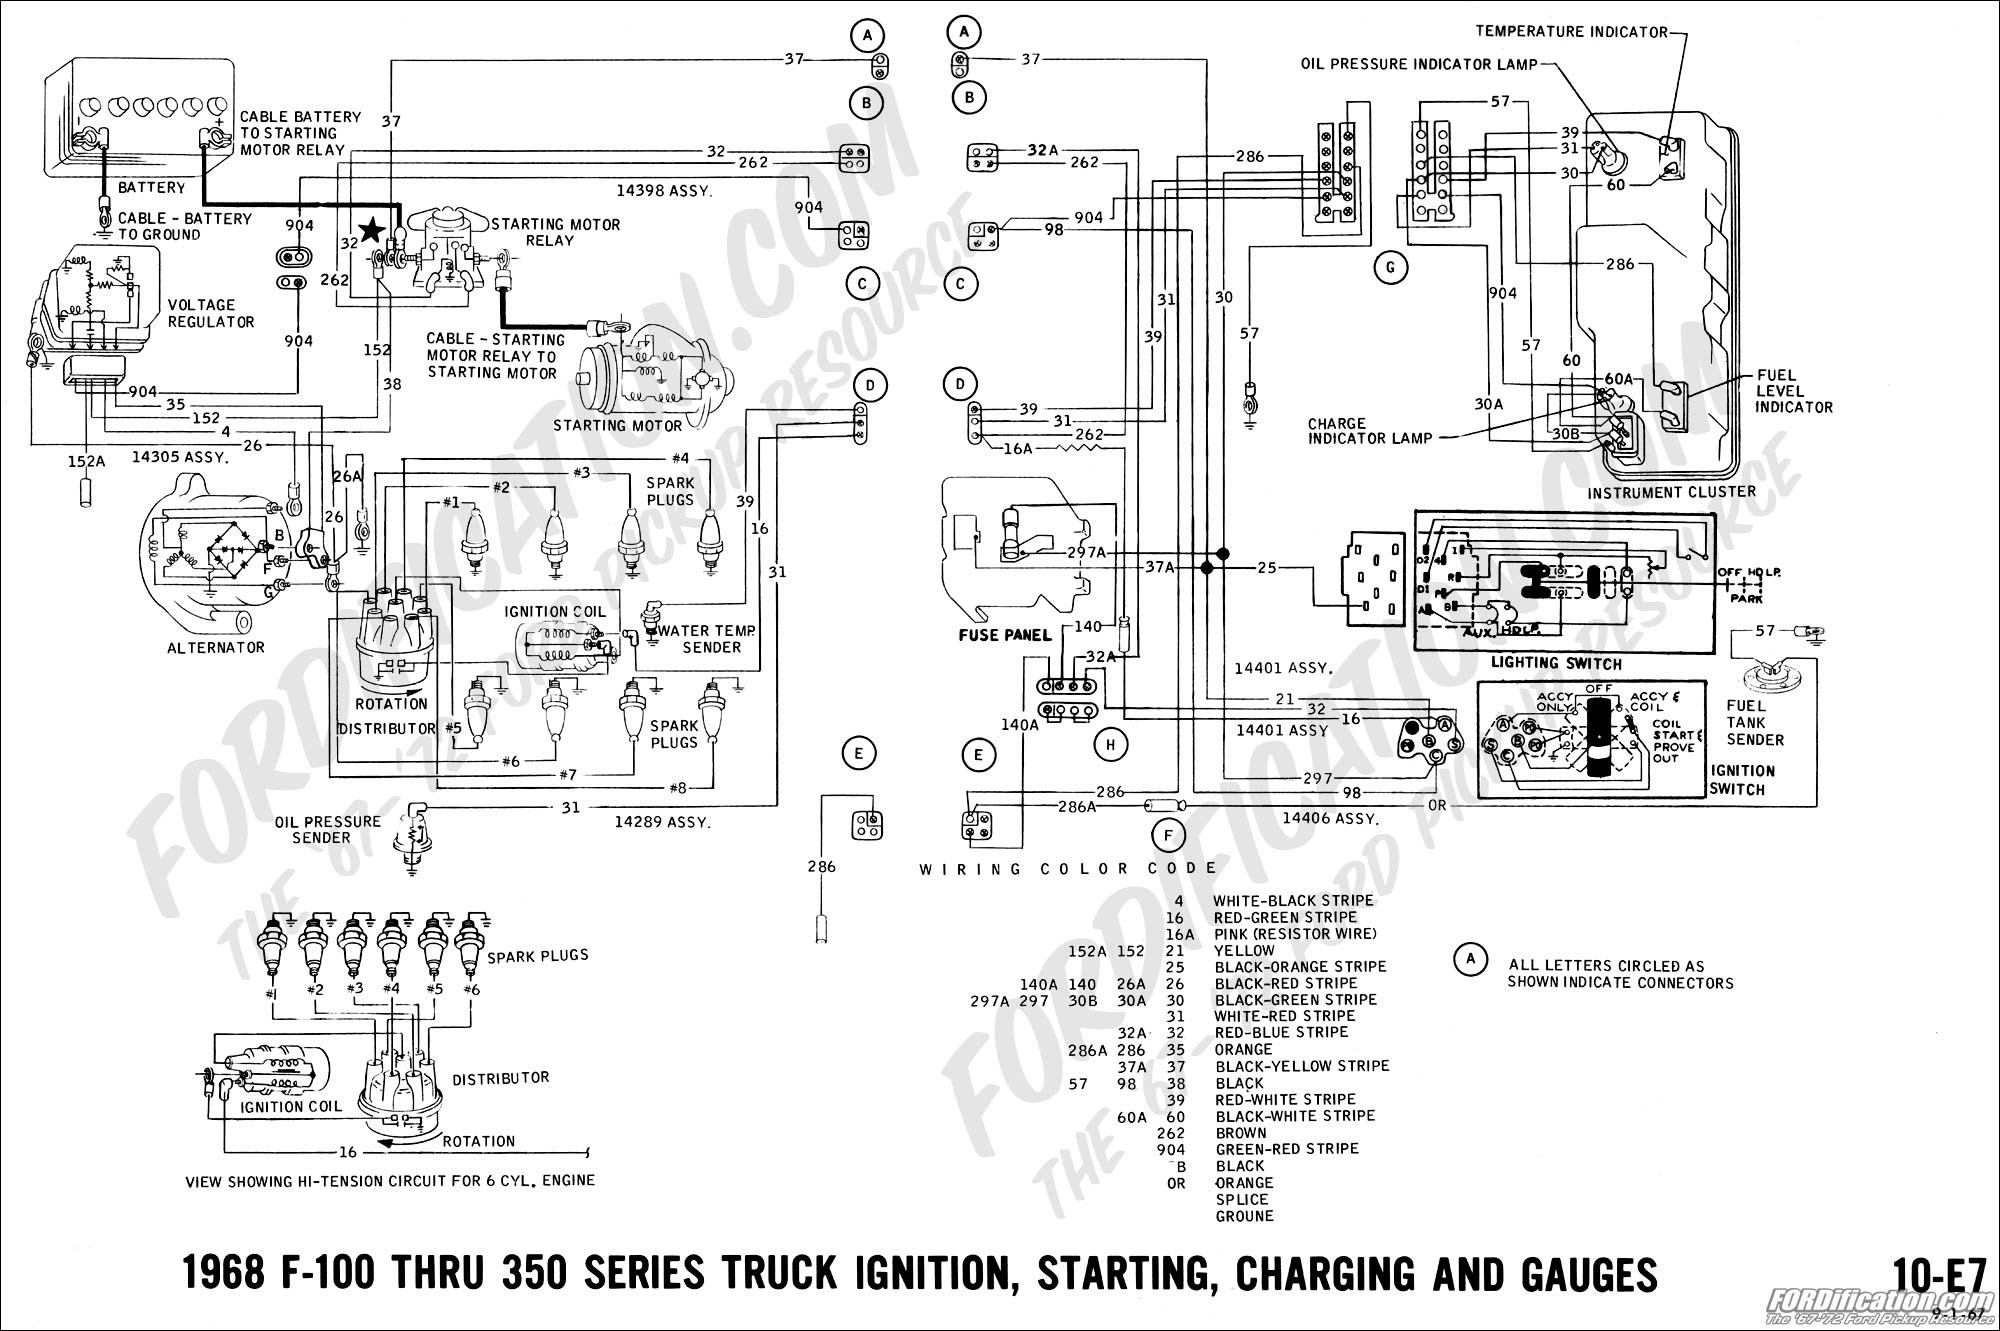 2001 F150 5 4 Engine Ignition Diagram Wiring Library Ford Truck Technical Drawings And Schematics Section H Of